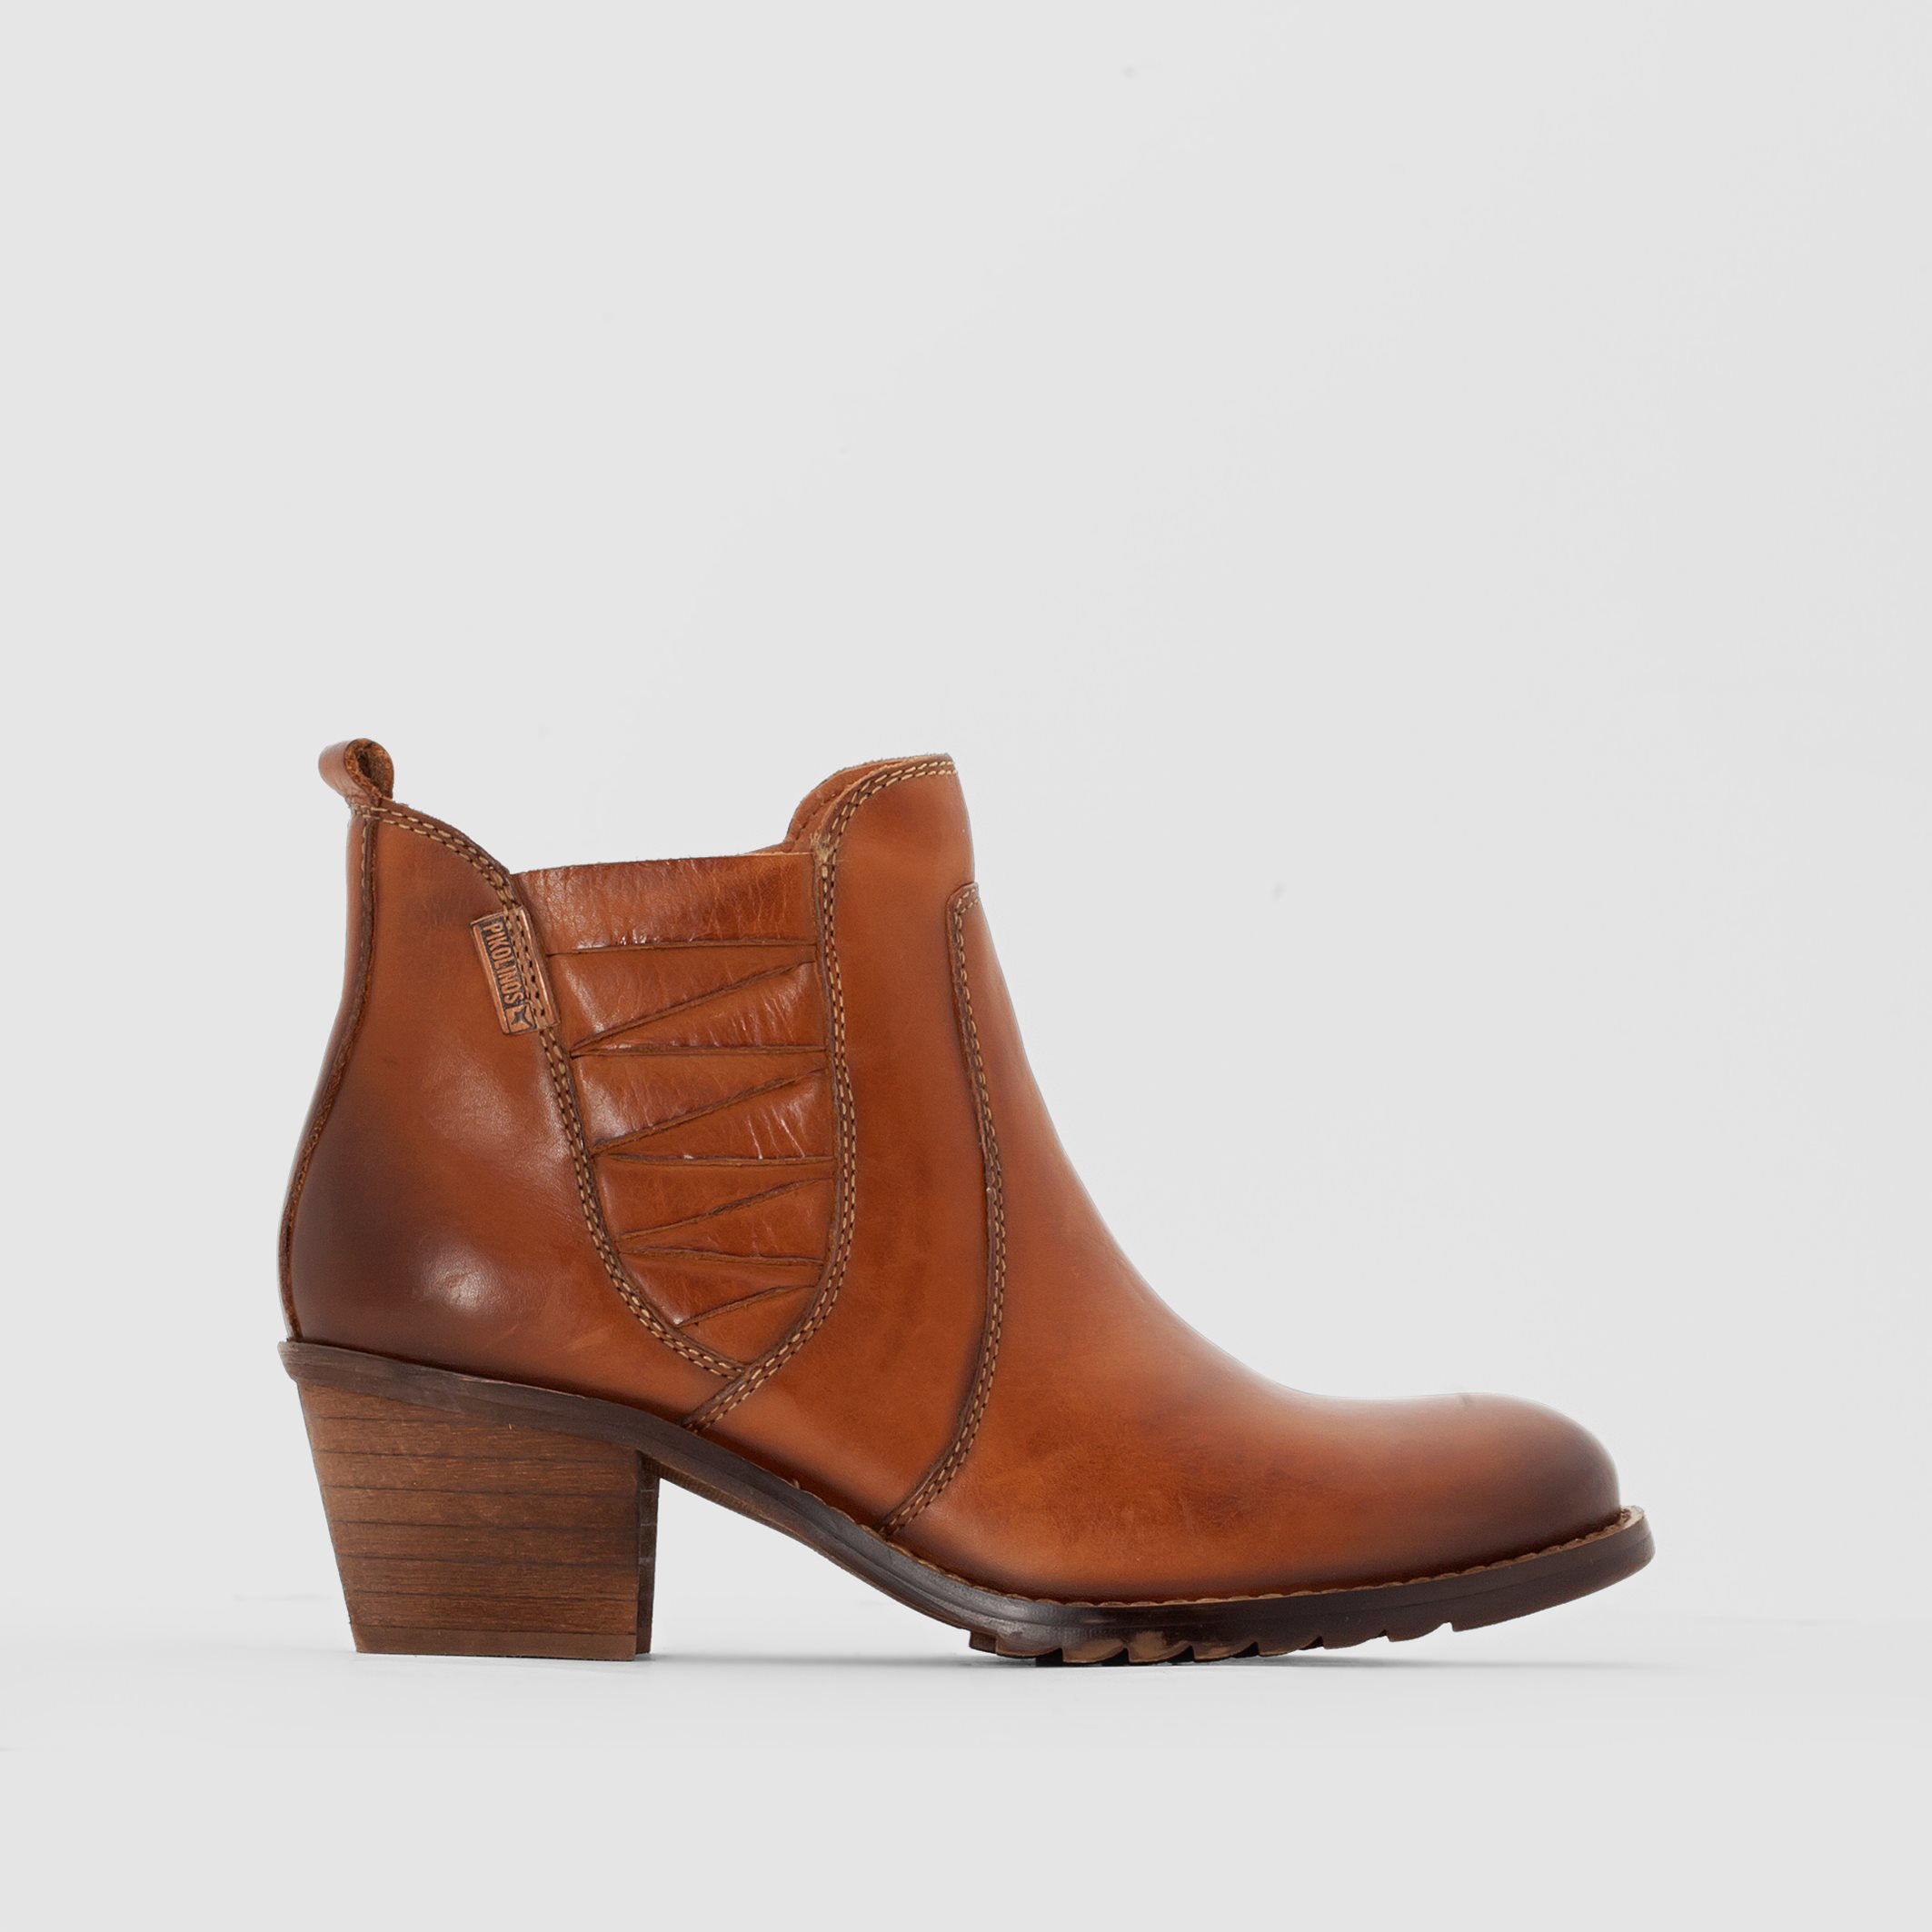 Pikolinos Andorra 913 Leather Boots Lyst